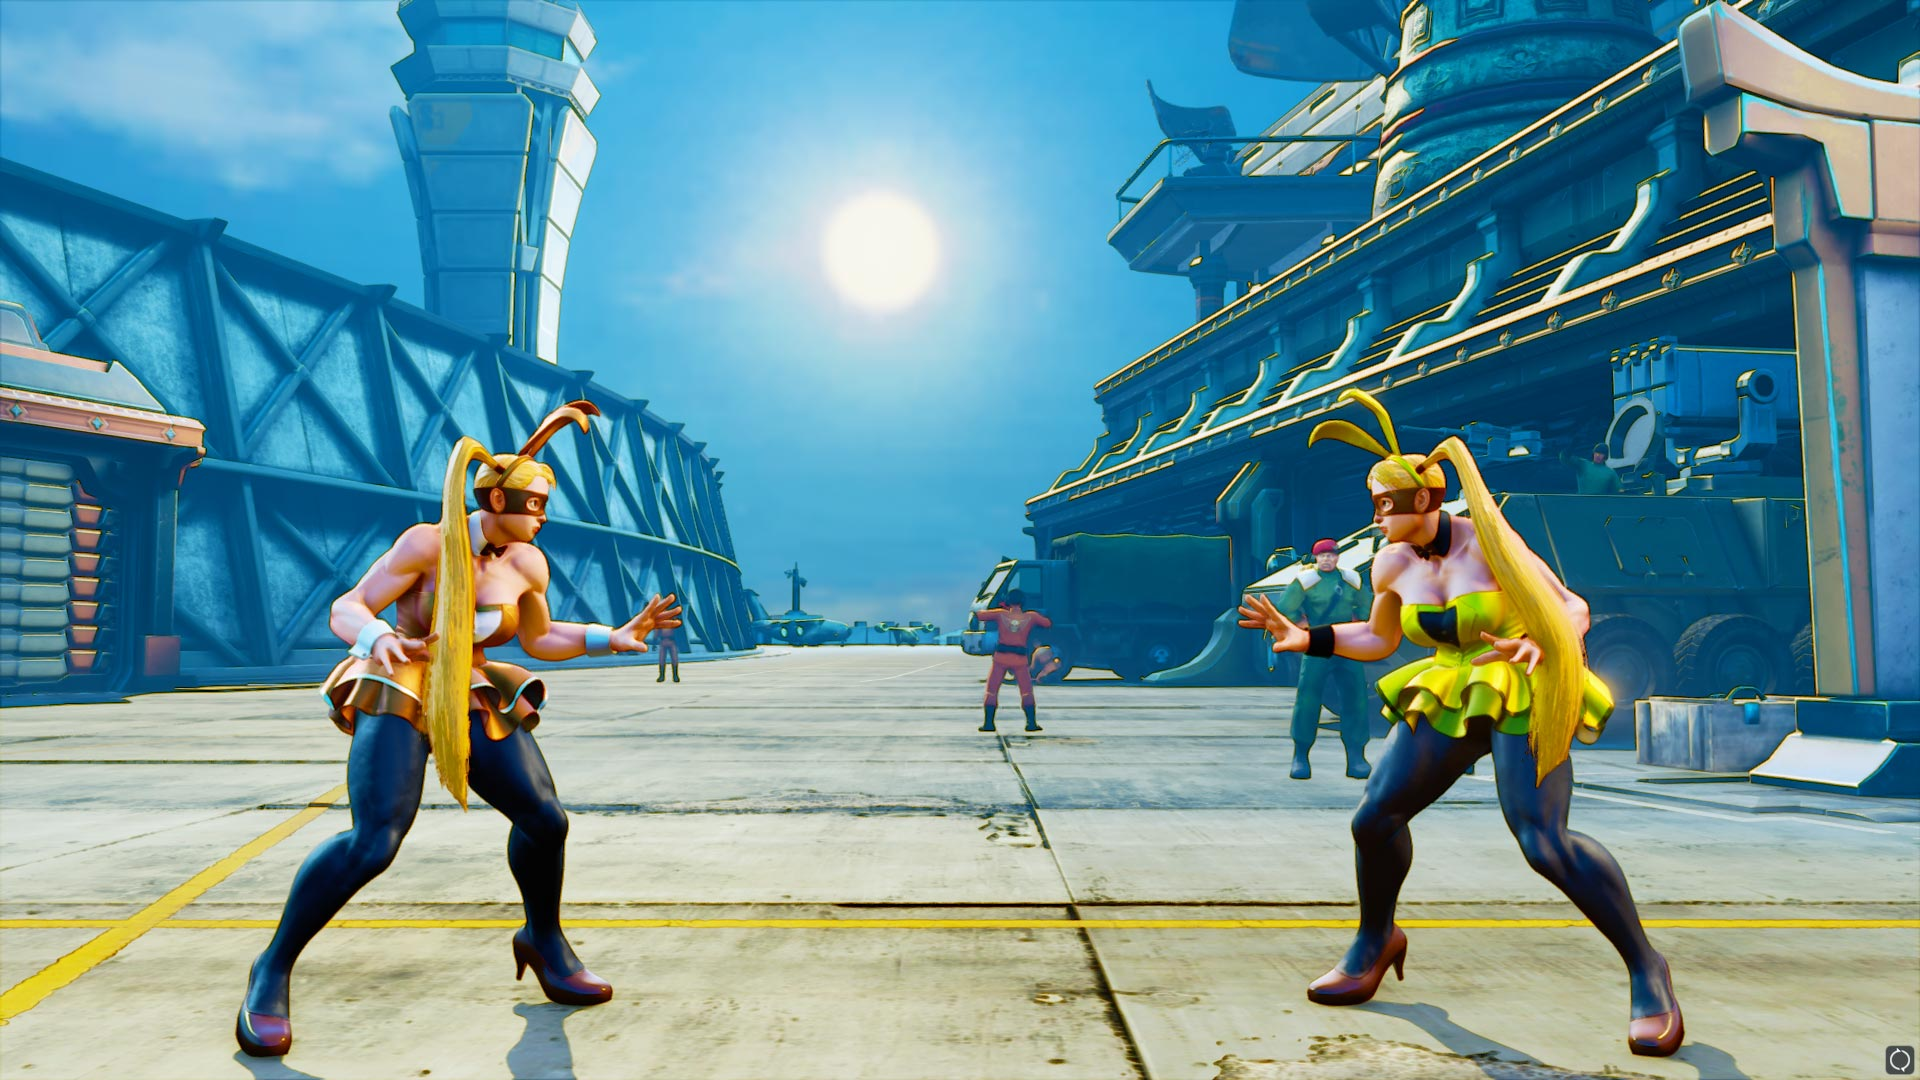 Professional costume colors for Street Fighter 5 19 out of 21 image gallery